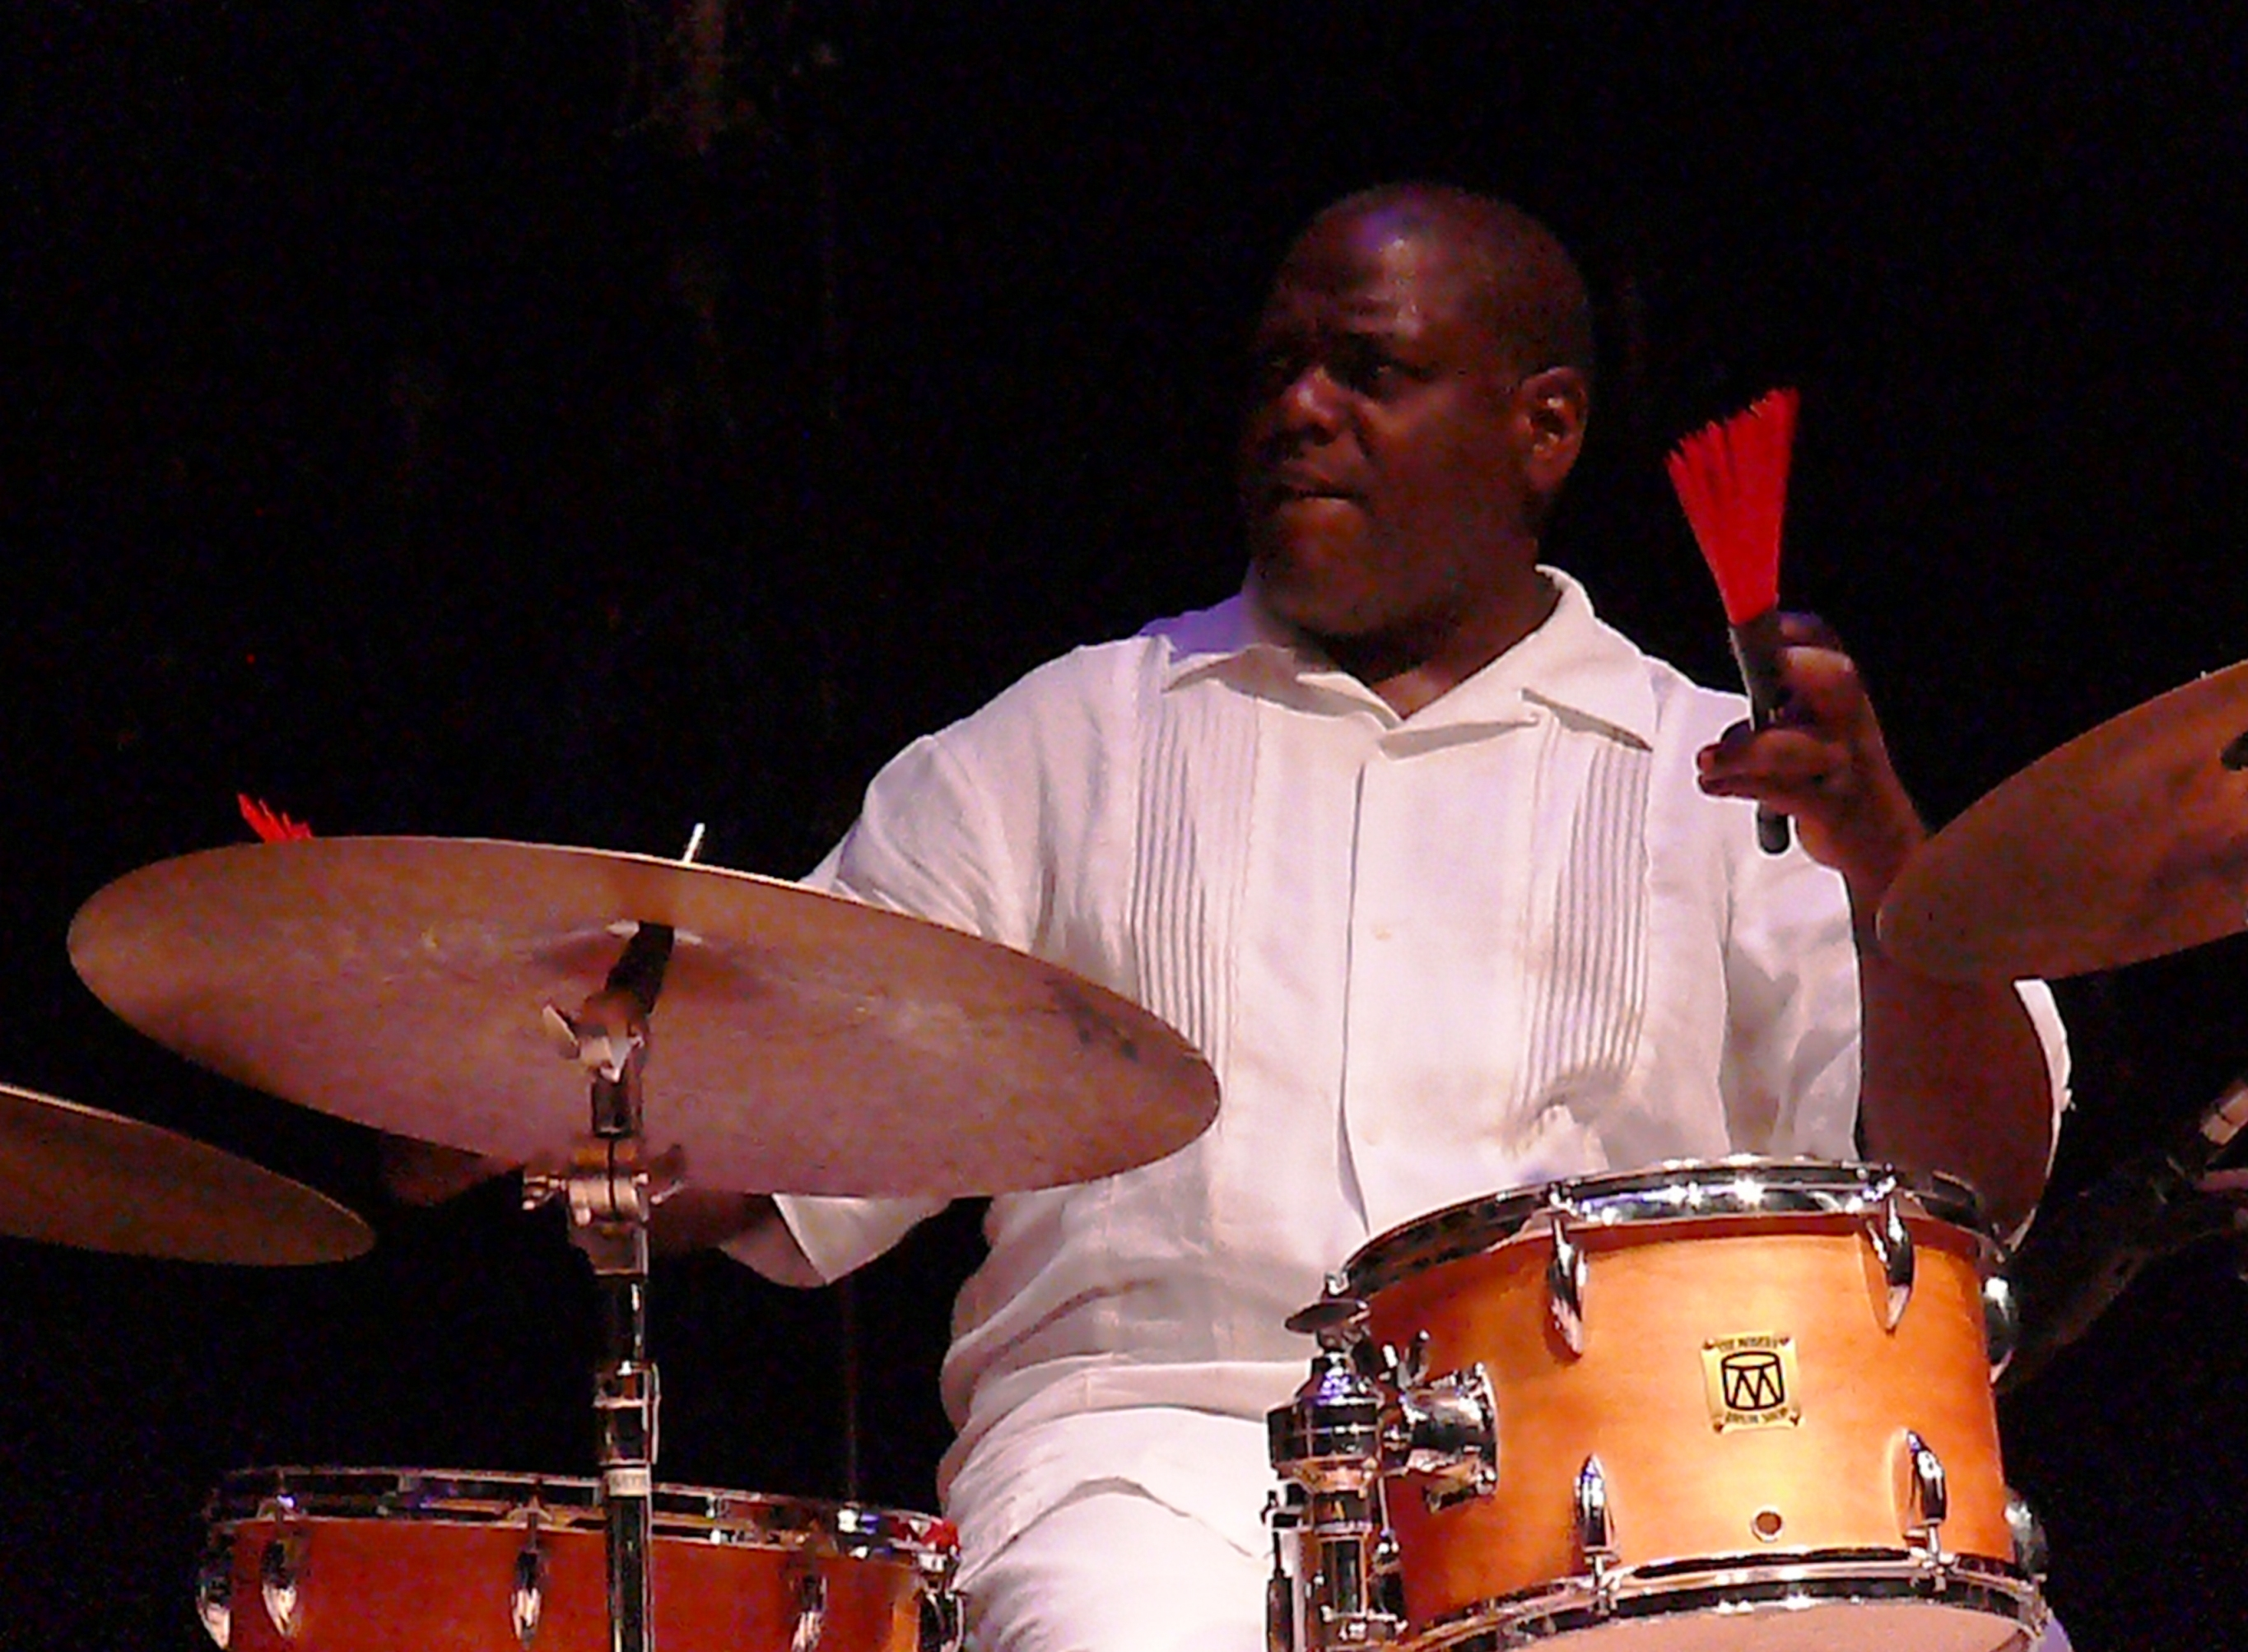 Michael wimberly at the vision festival, new york in june 2013